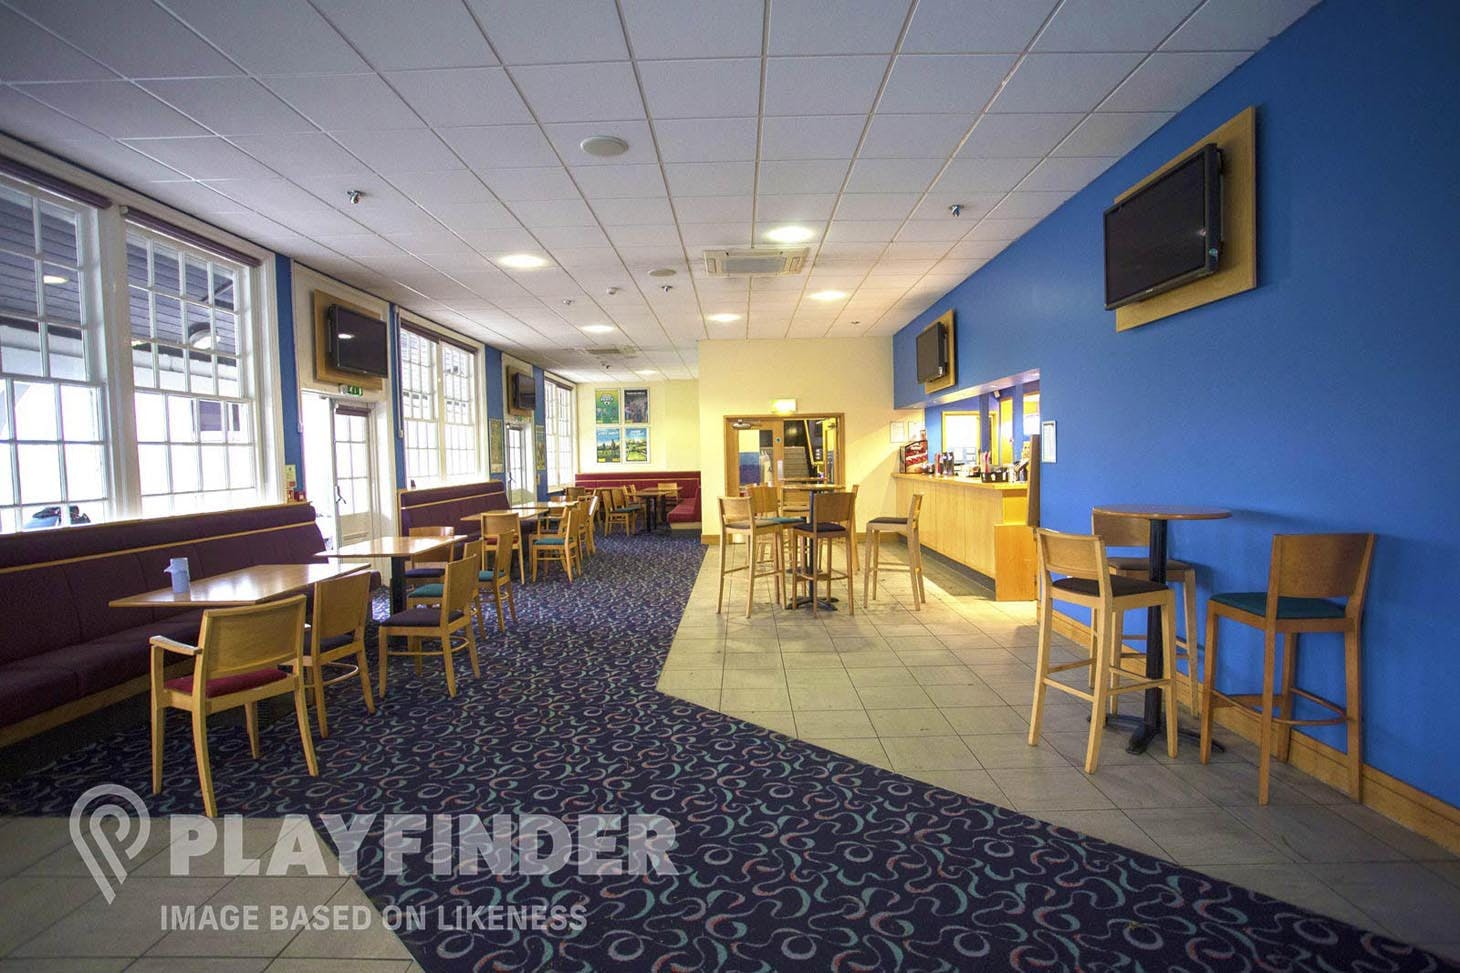 Caterham School Sports Centre Function room space hire